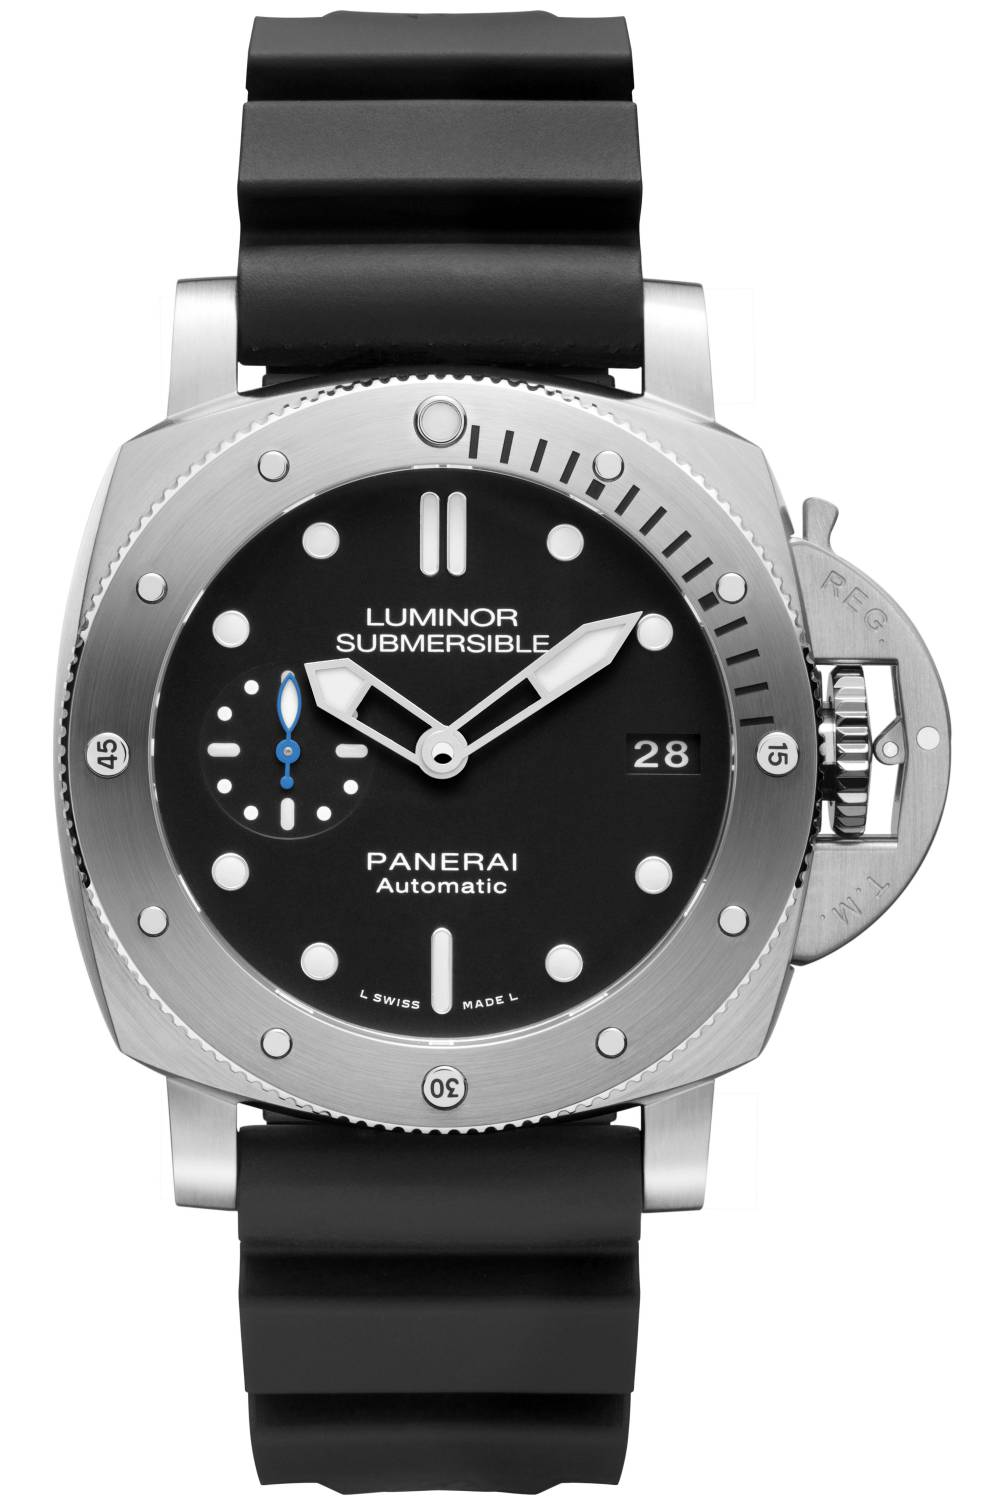 Panerai-Luminor-Submersible-1950-PAM00682-3.jpg